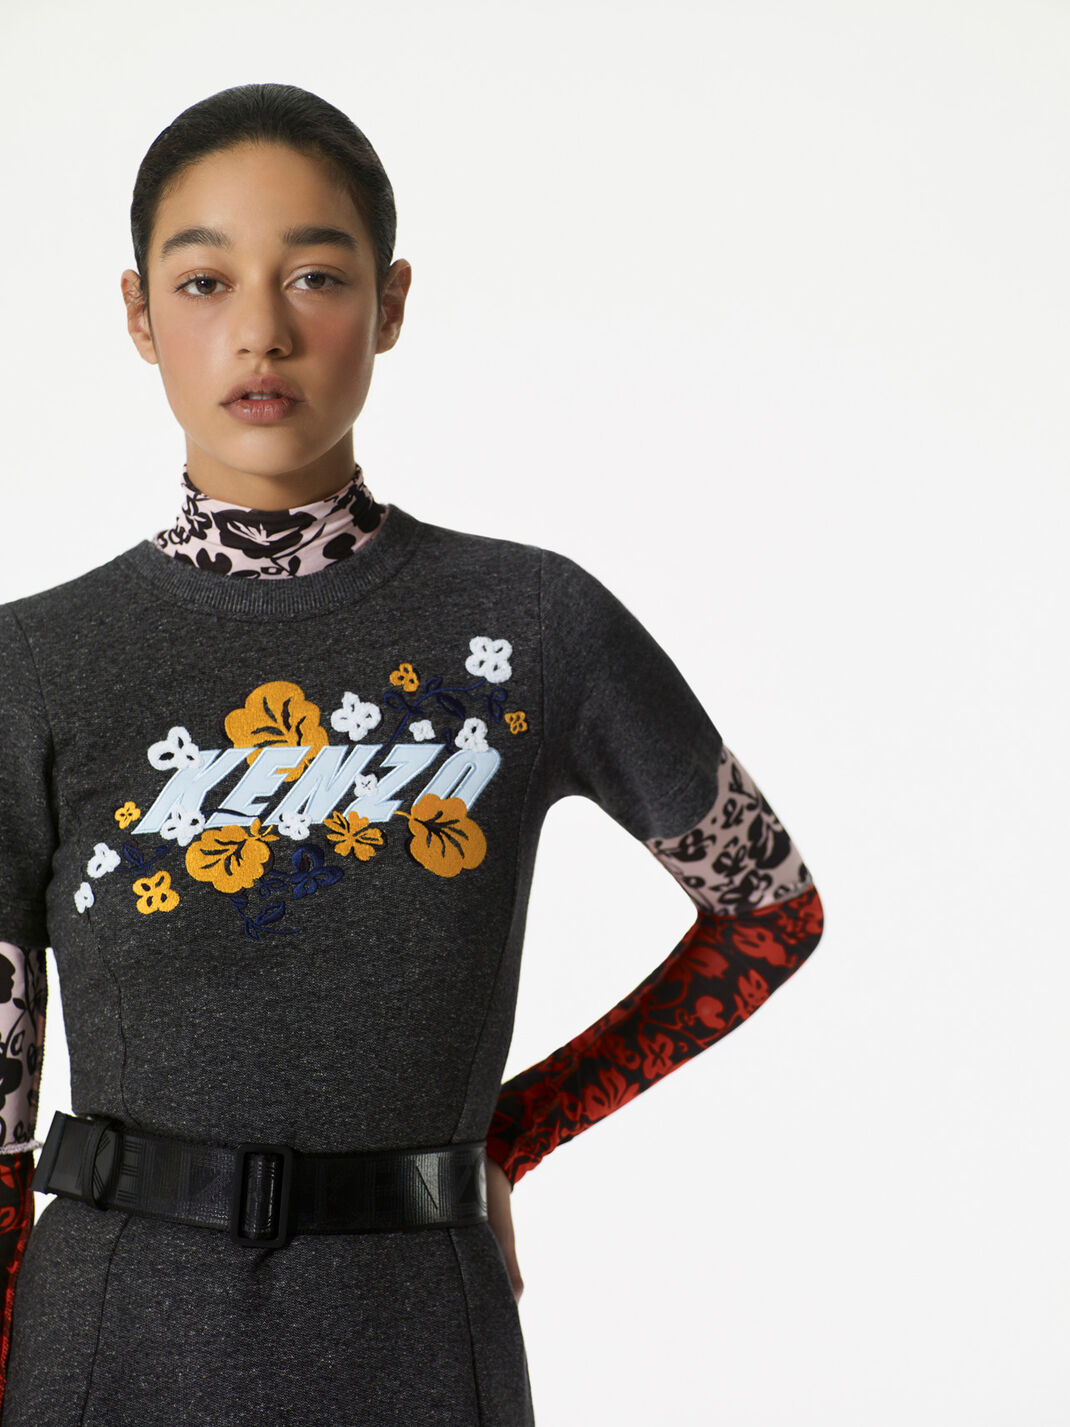 ANTHRACITE KENZO x 'Floral Leaf' sweatshirt dress for women